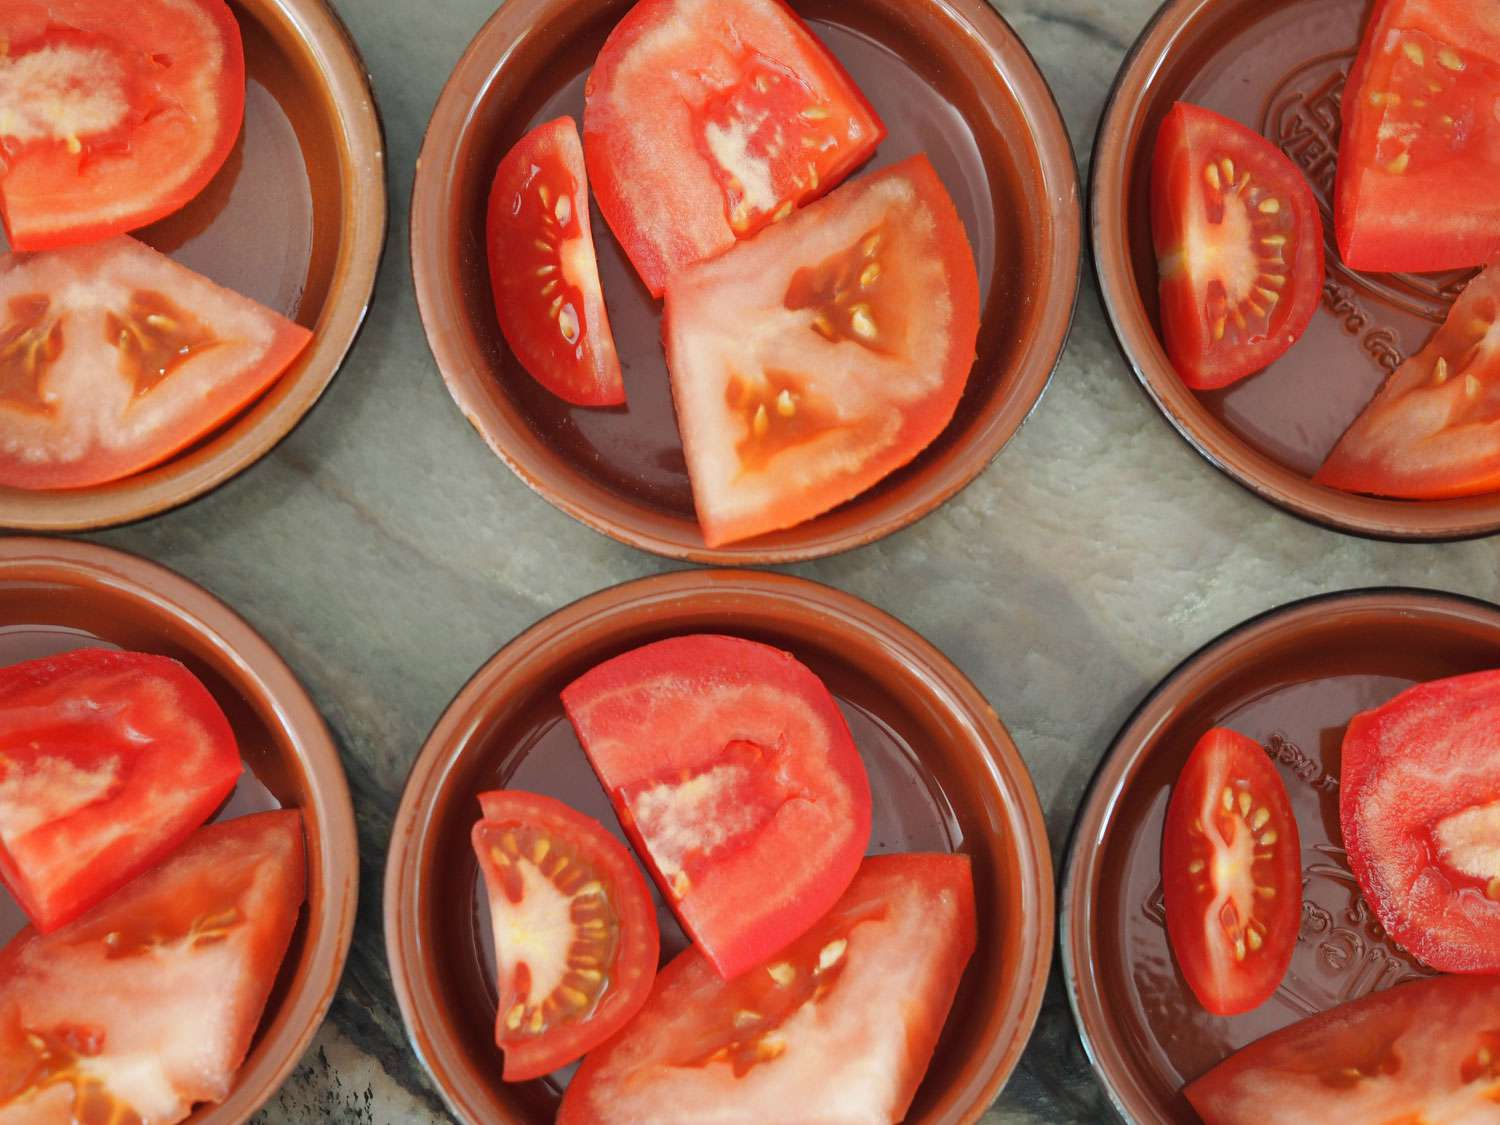 Pieces of tomato divided into various bowls for tasting